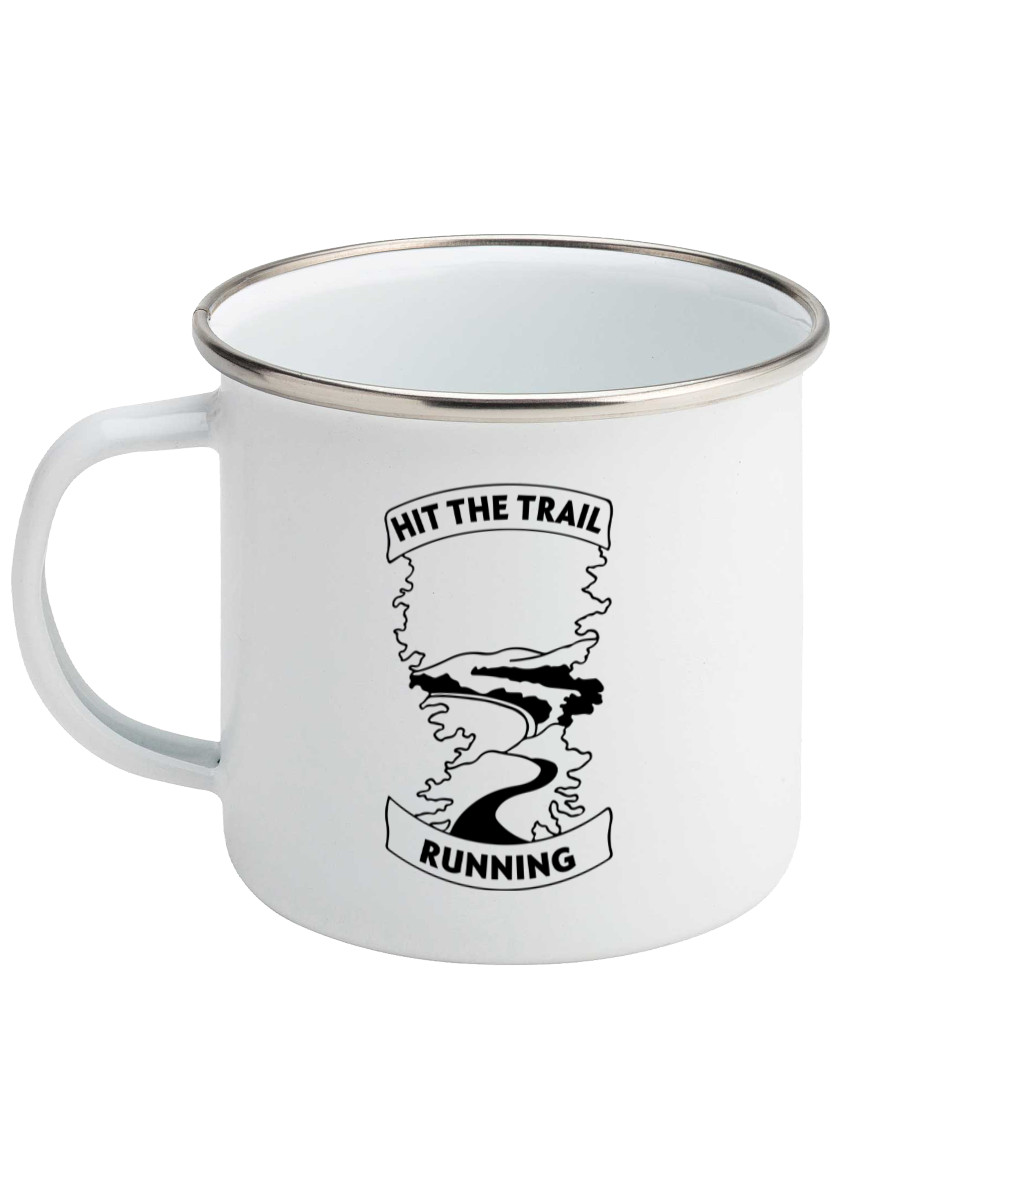 Hit The Trail Running - Enamel Mug, Suggested Products, Pen and Ink Studios Adventure Clothing